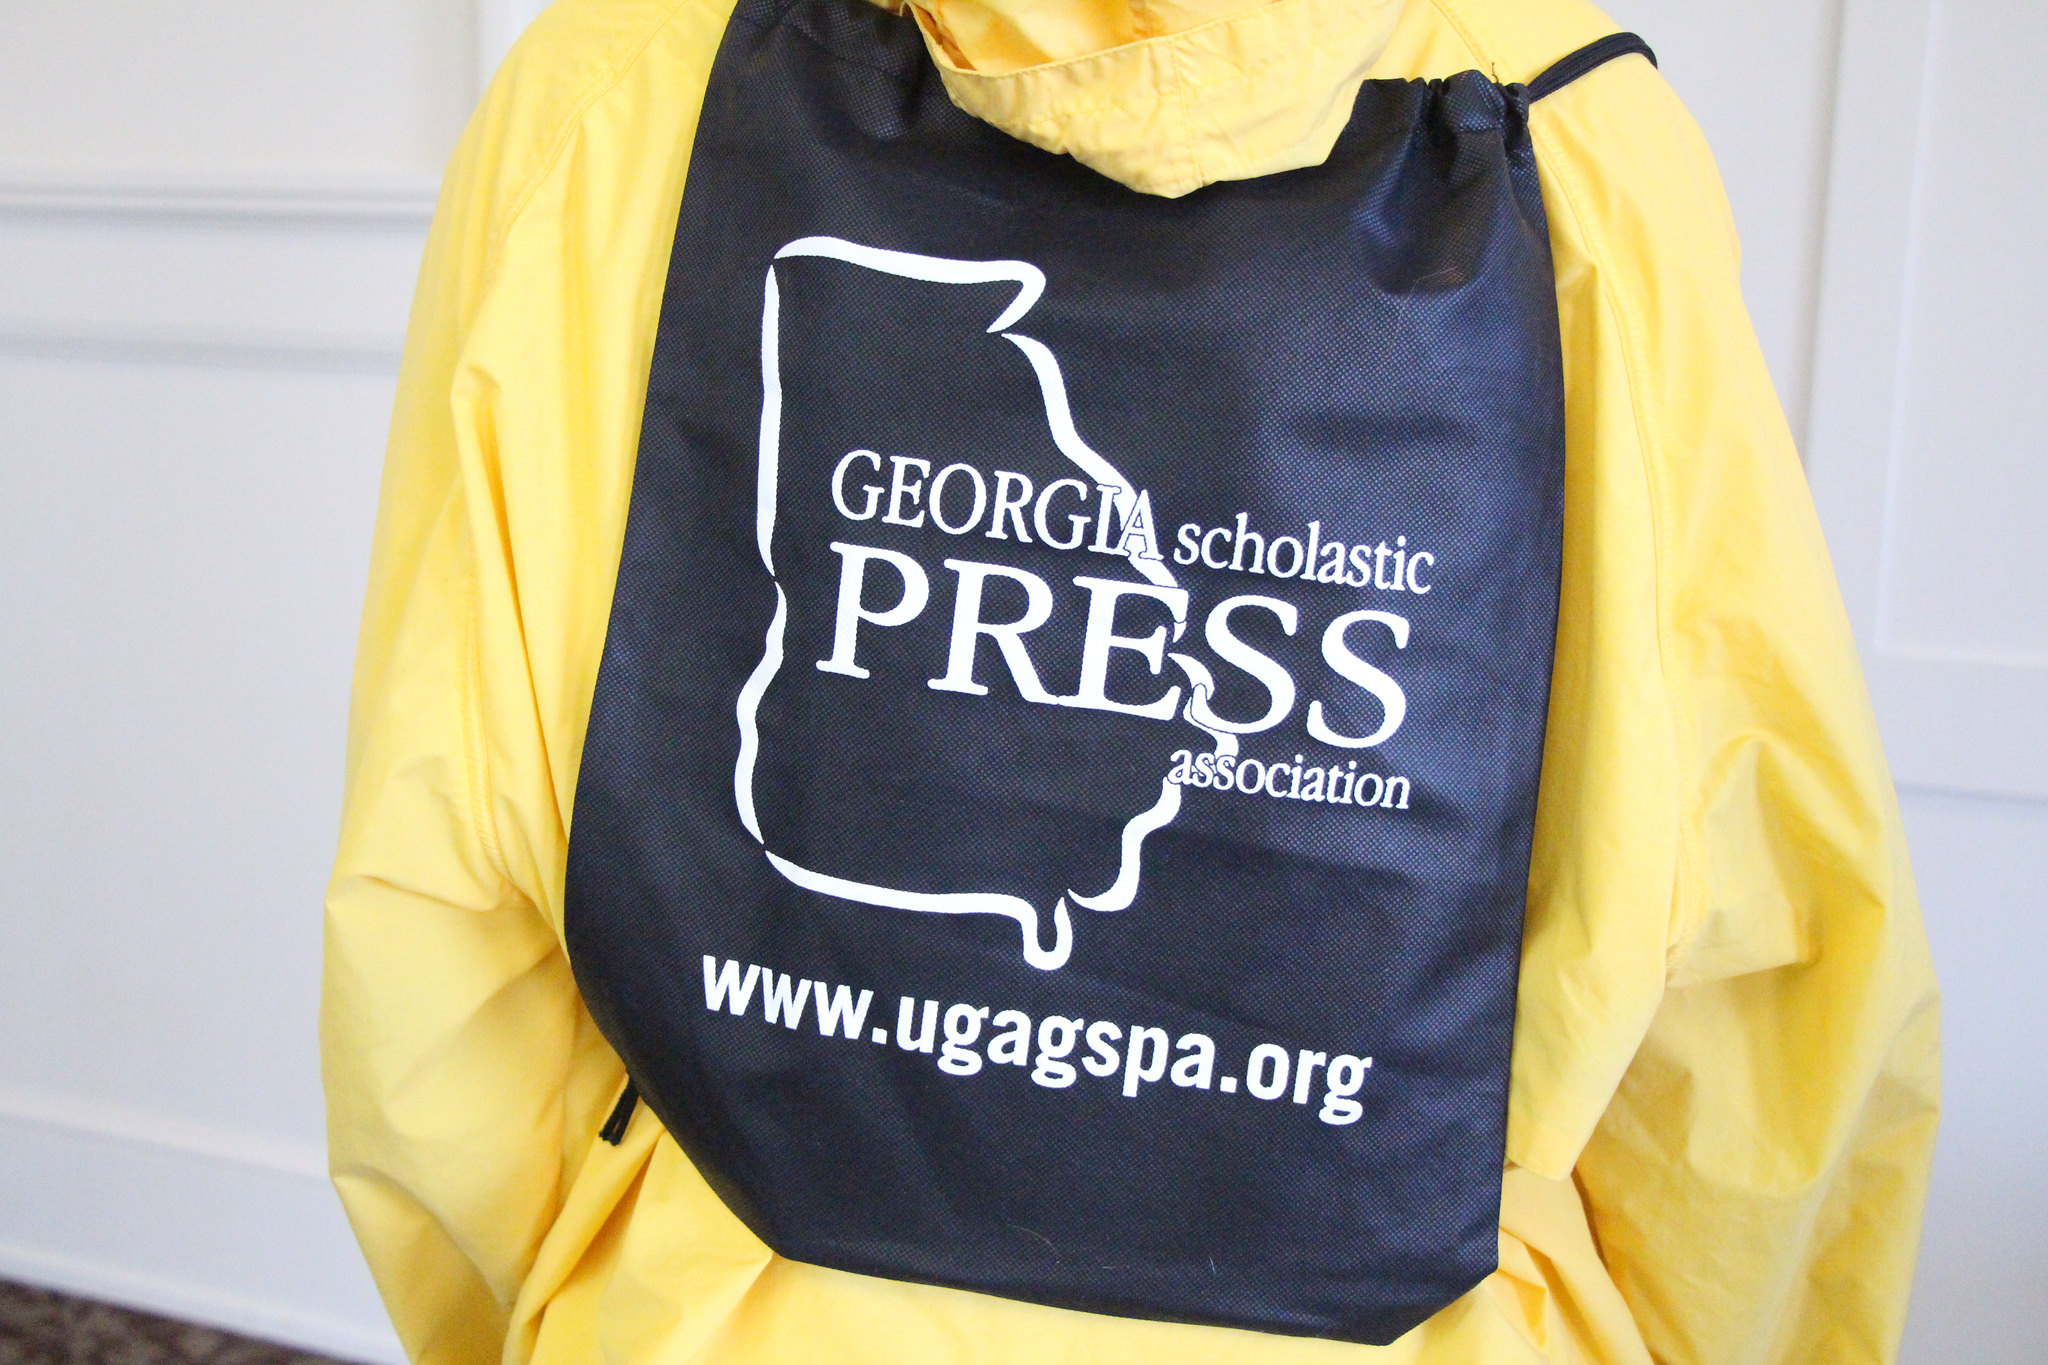 Applications due Sept. 5, 2018 - Applications are available online here.In addition to filling out the form, please email your resume and a cover letter to gspa@uga.eduwith the subject line